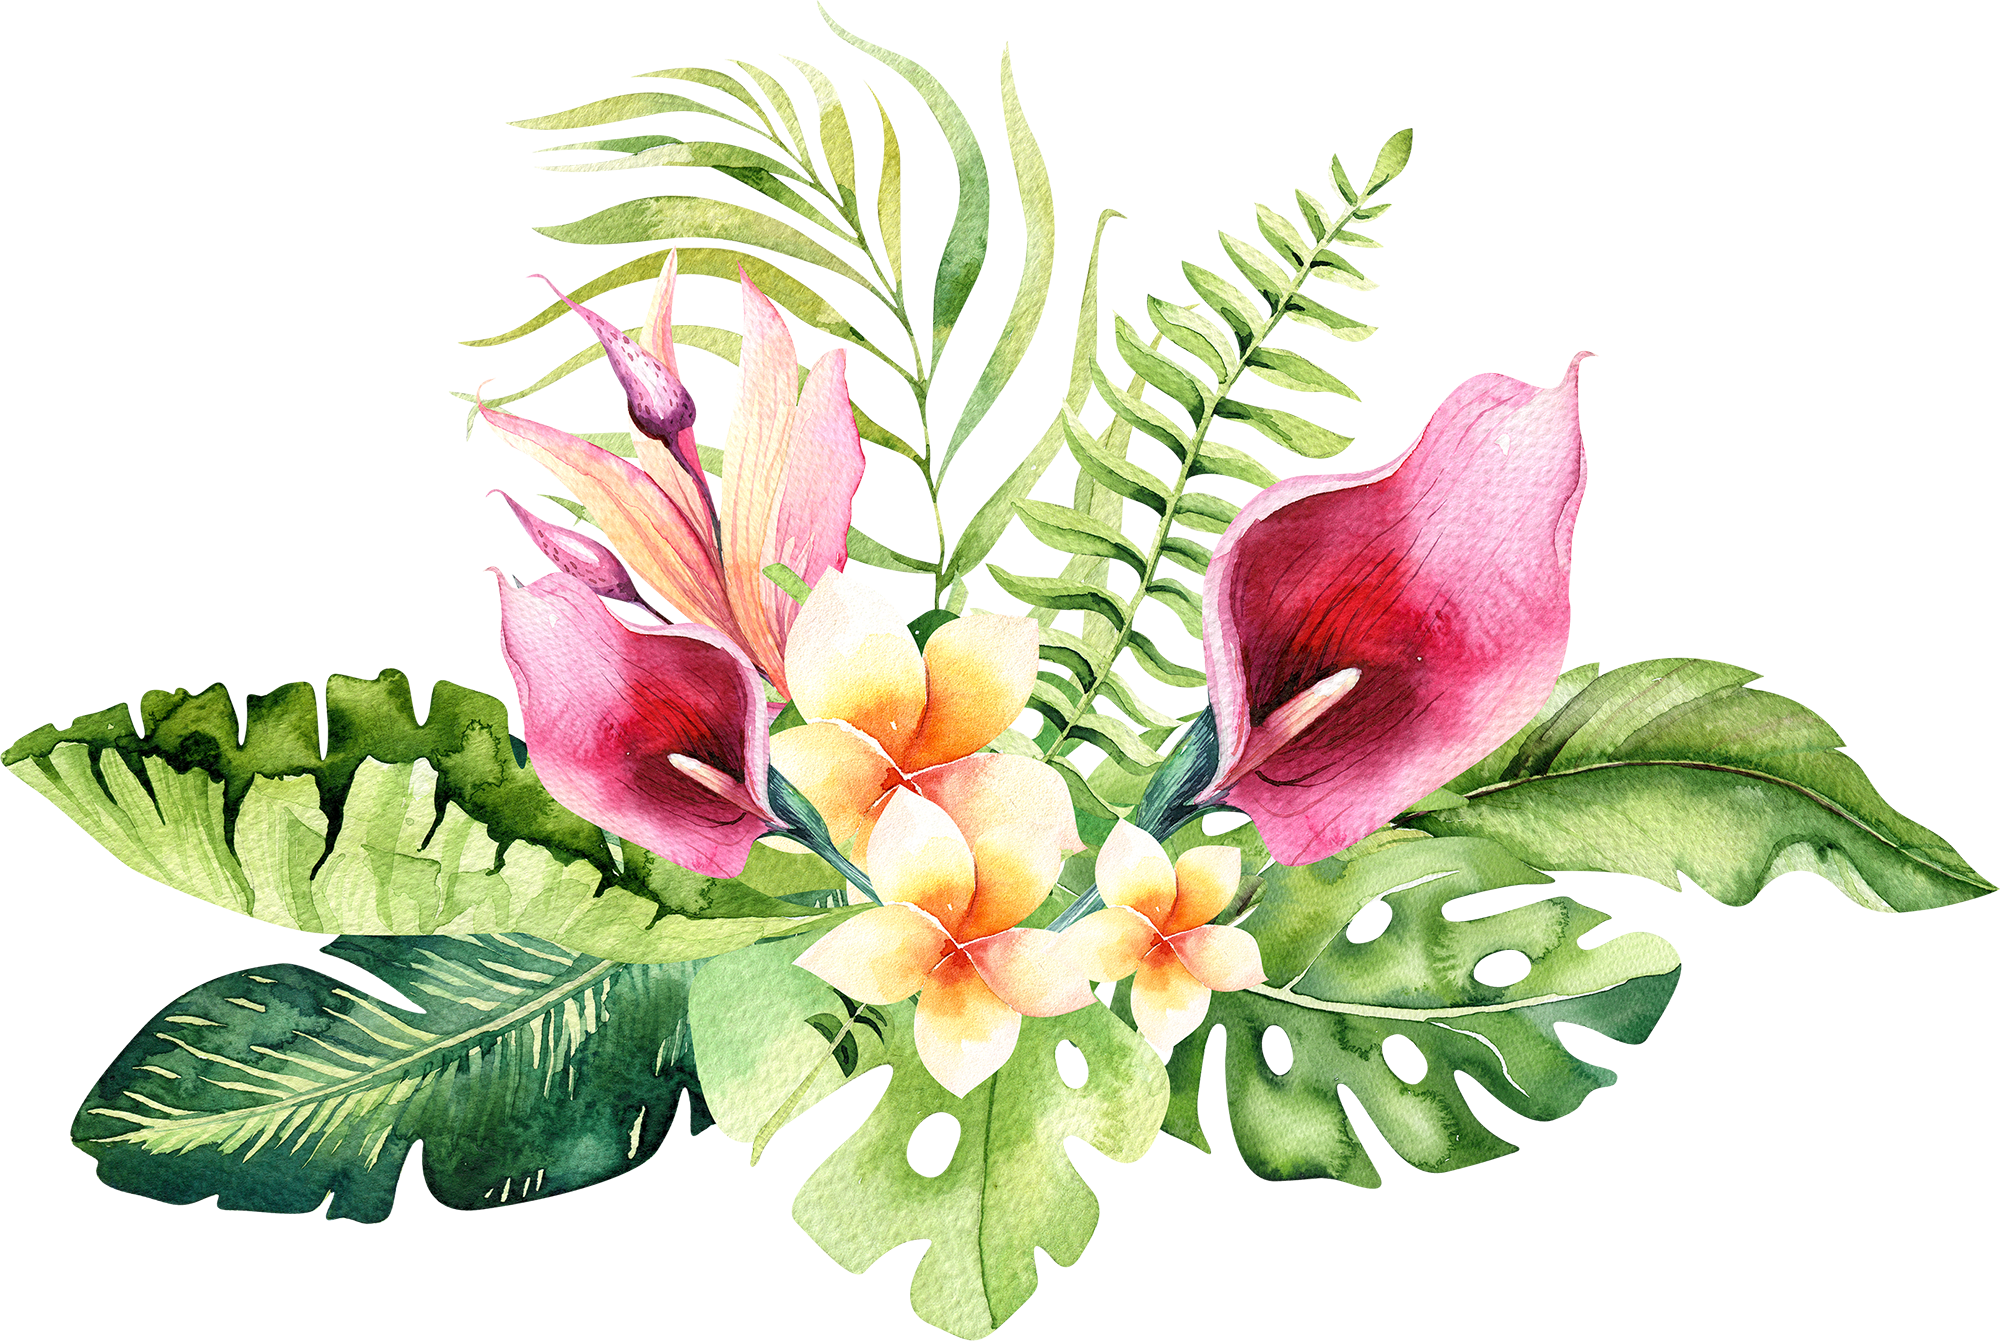 Download 4 - Hand Drawn Watercolor Tropical Flower PNG ...